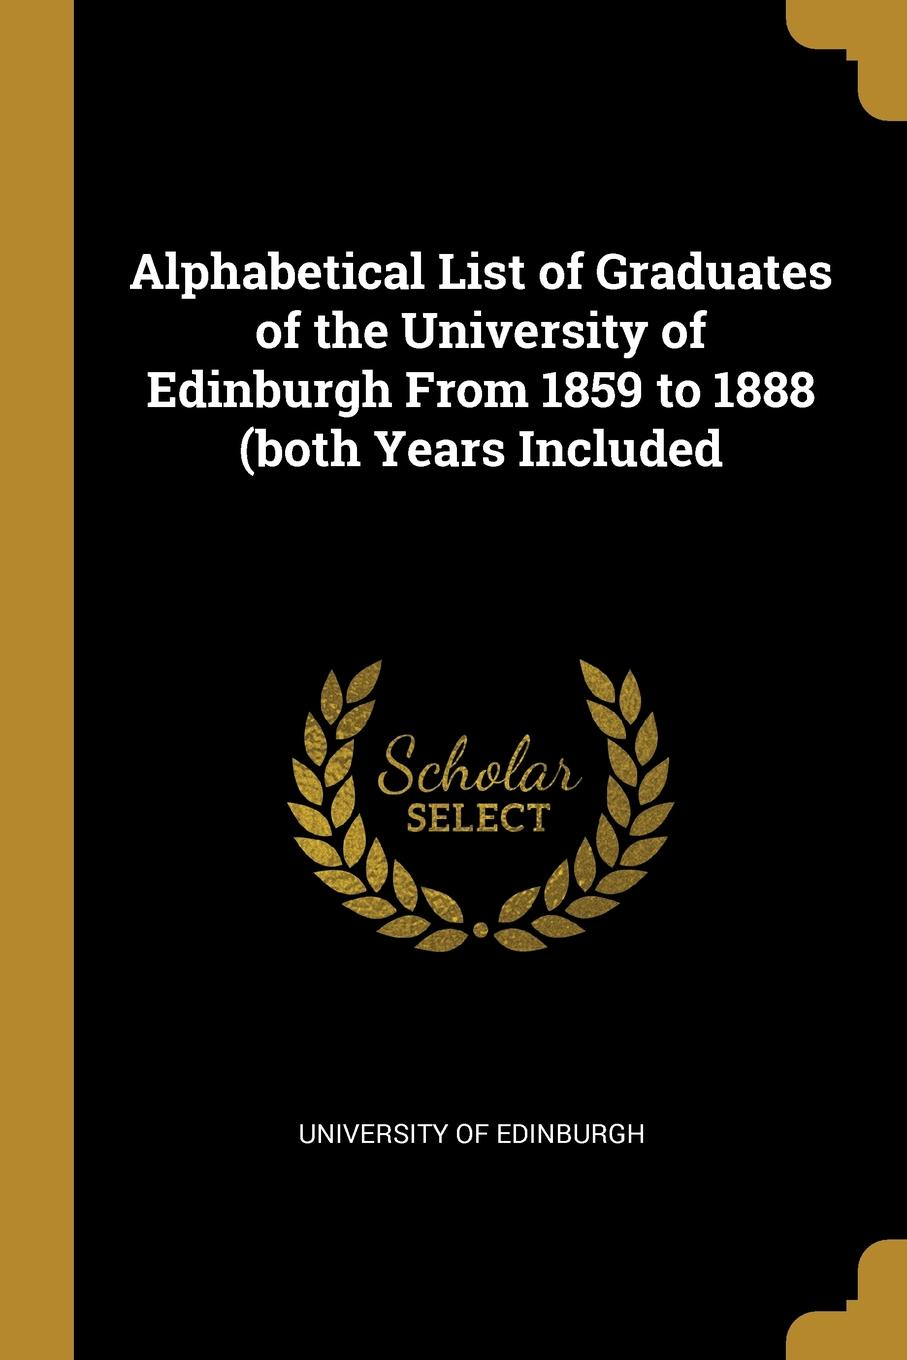 Alphabetical List of Graduates of the University of Edinburgh From 1859 to 1888 (both Years Included